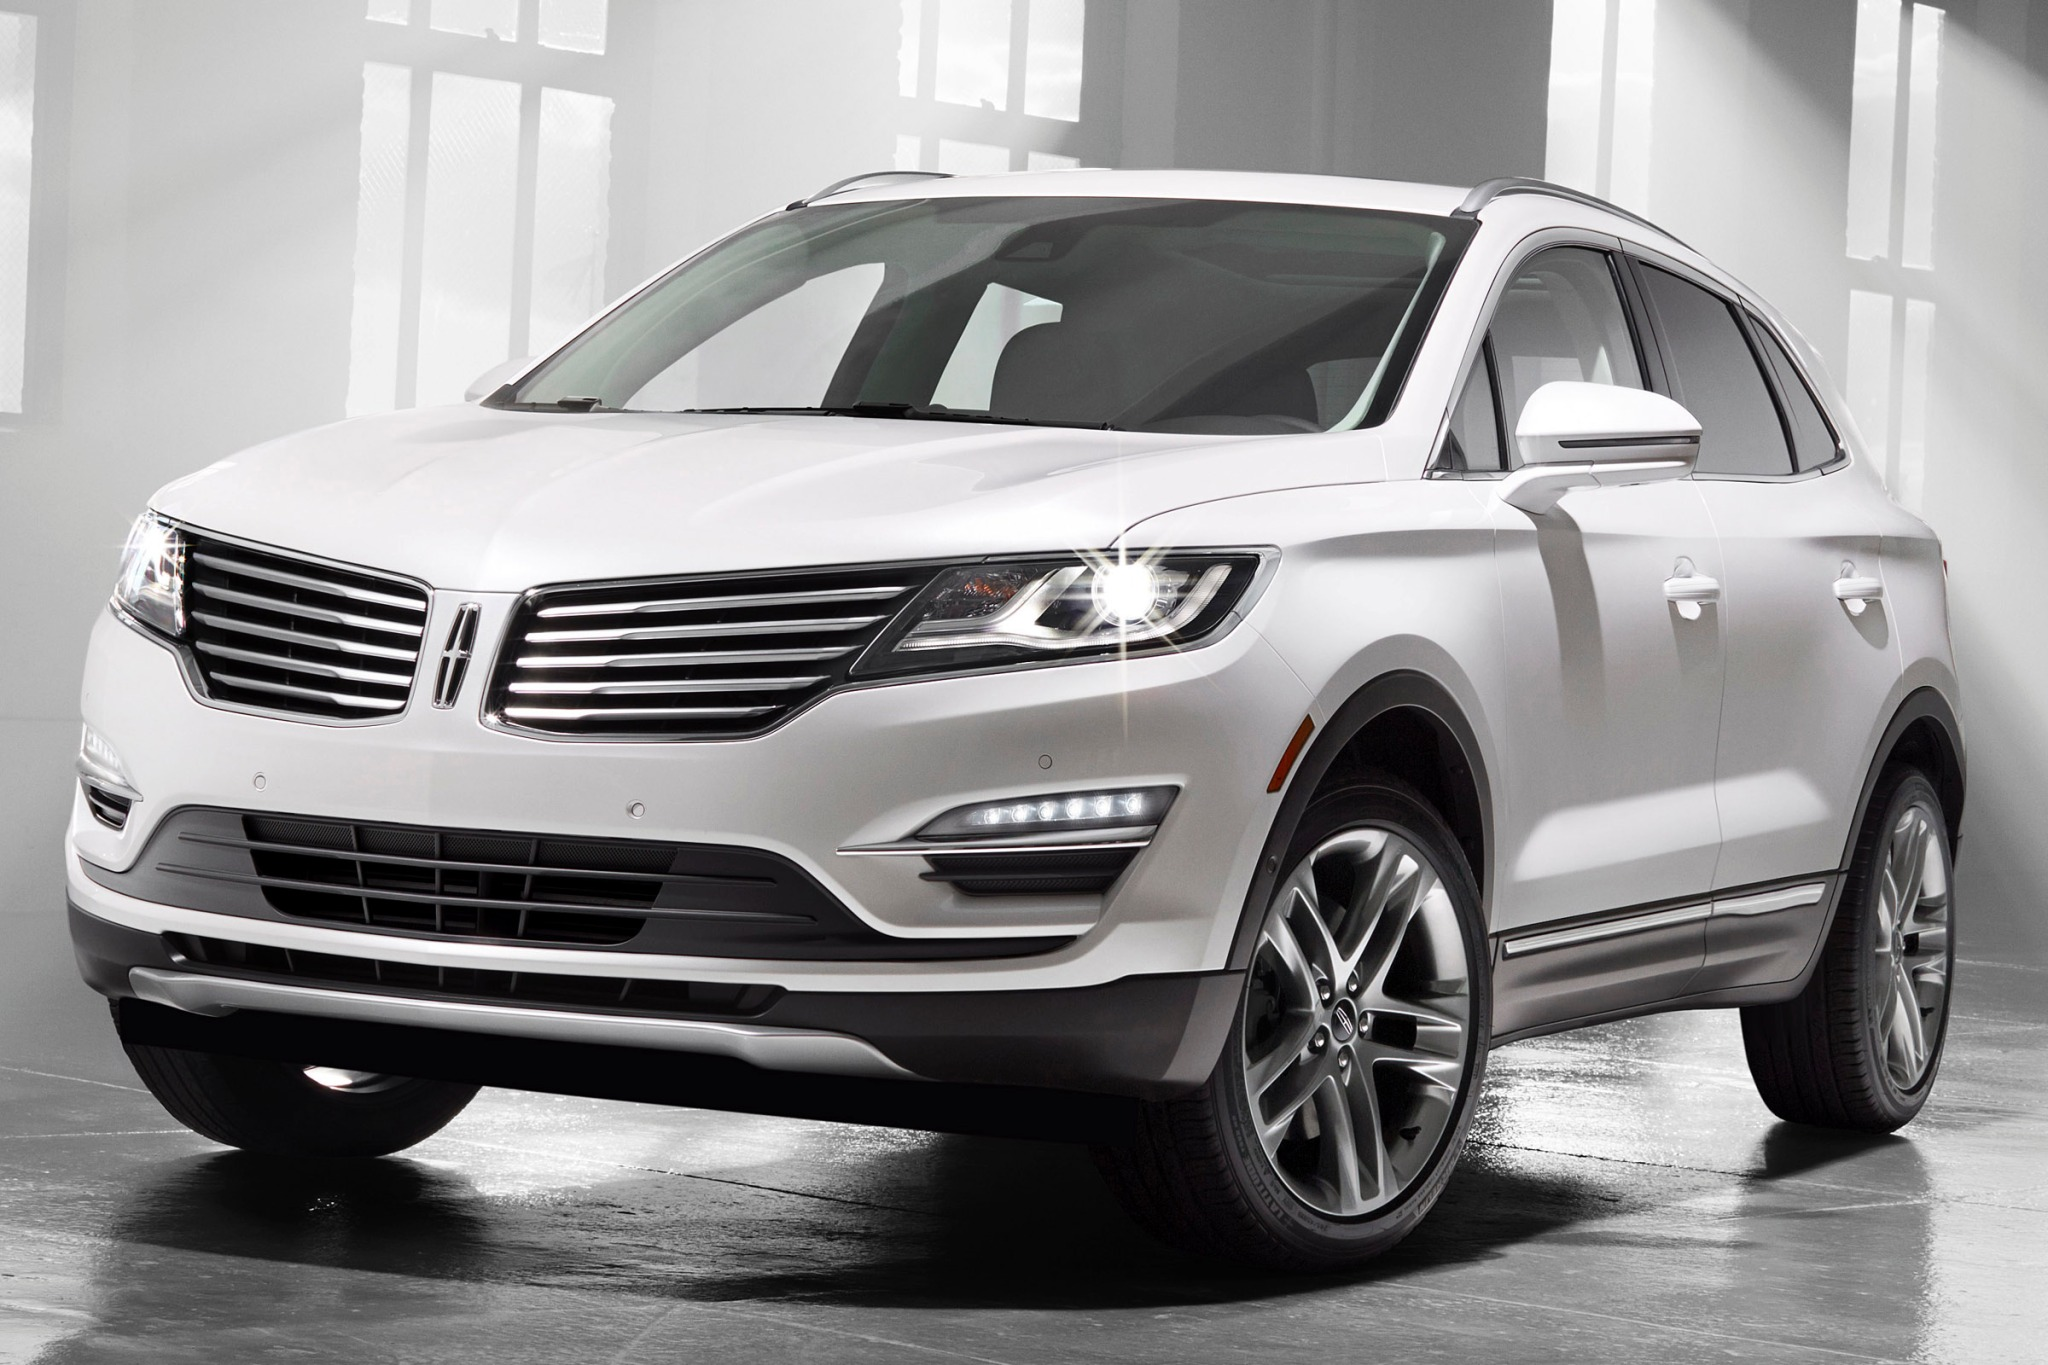 2015 Lincoln MKC 4dr SUV  exterior #2